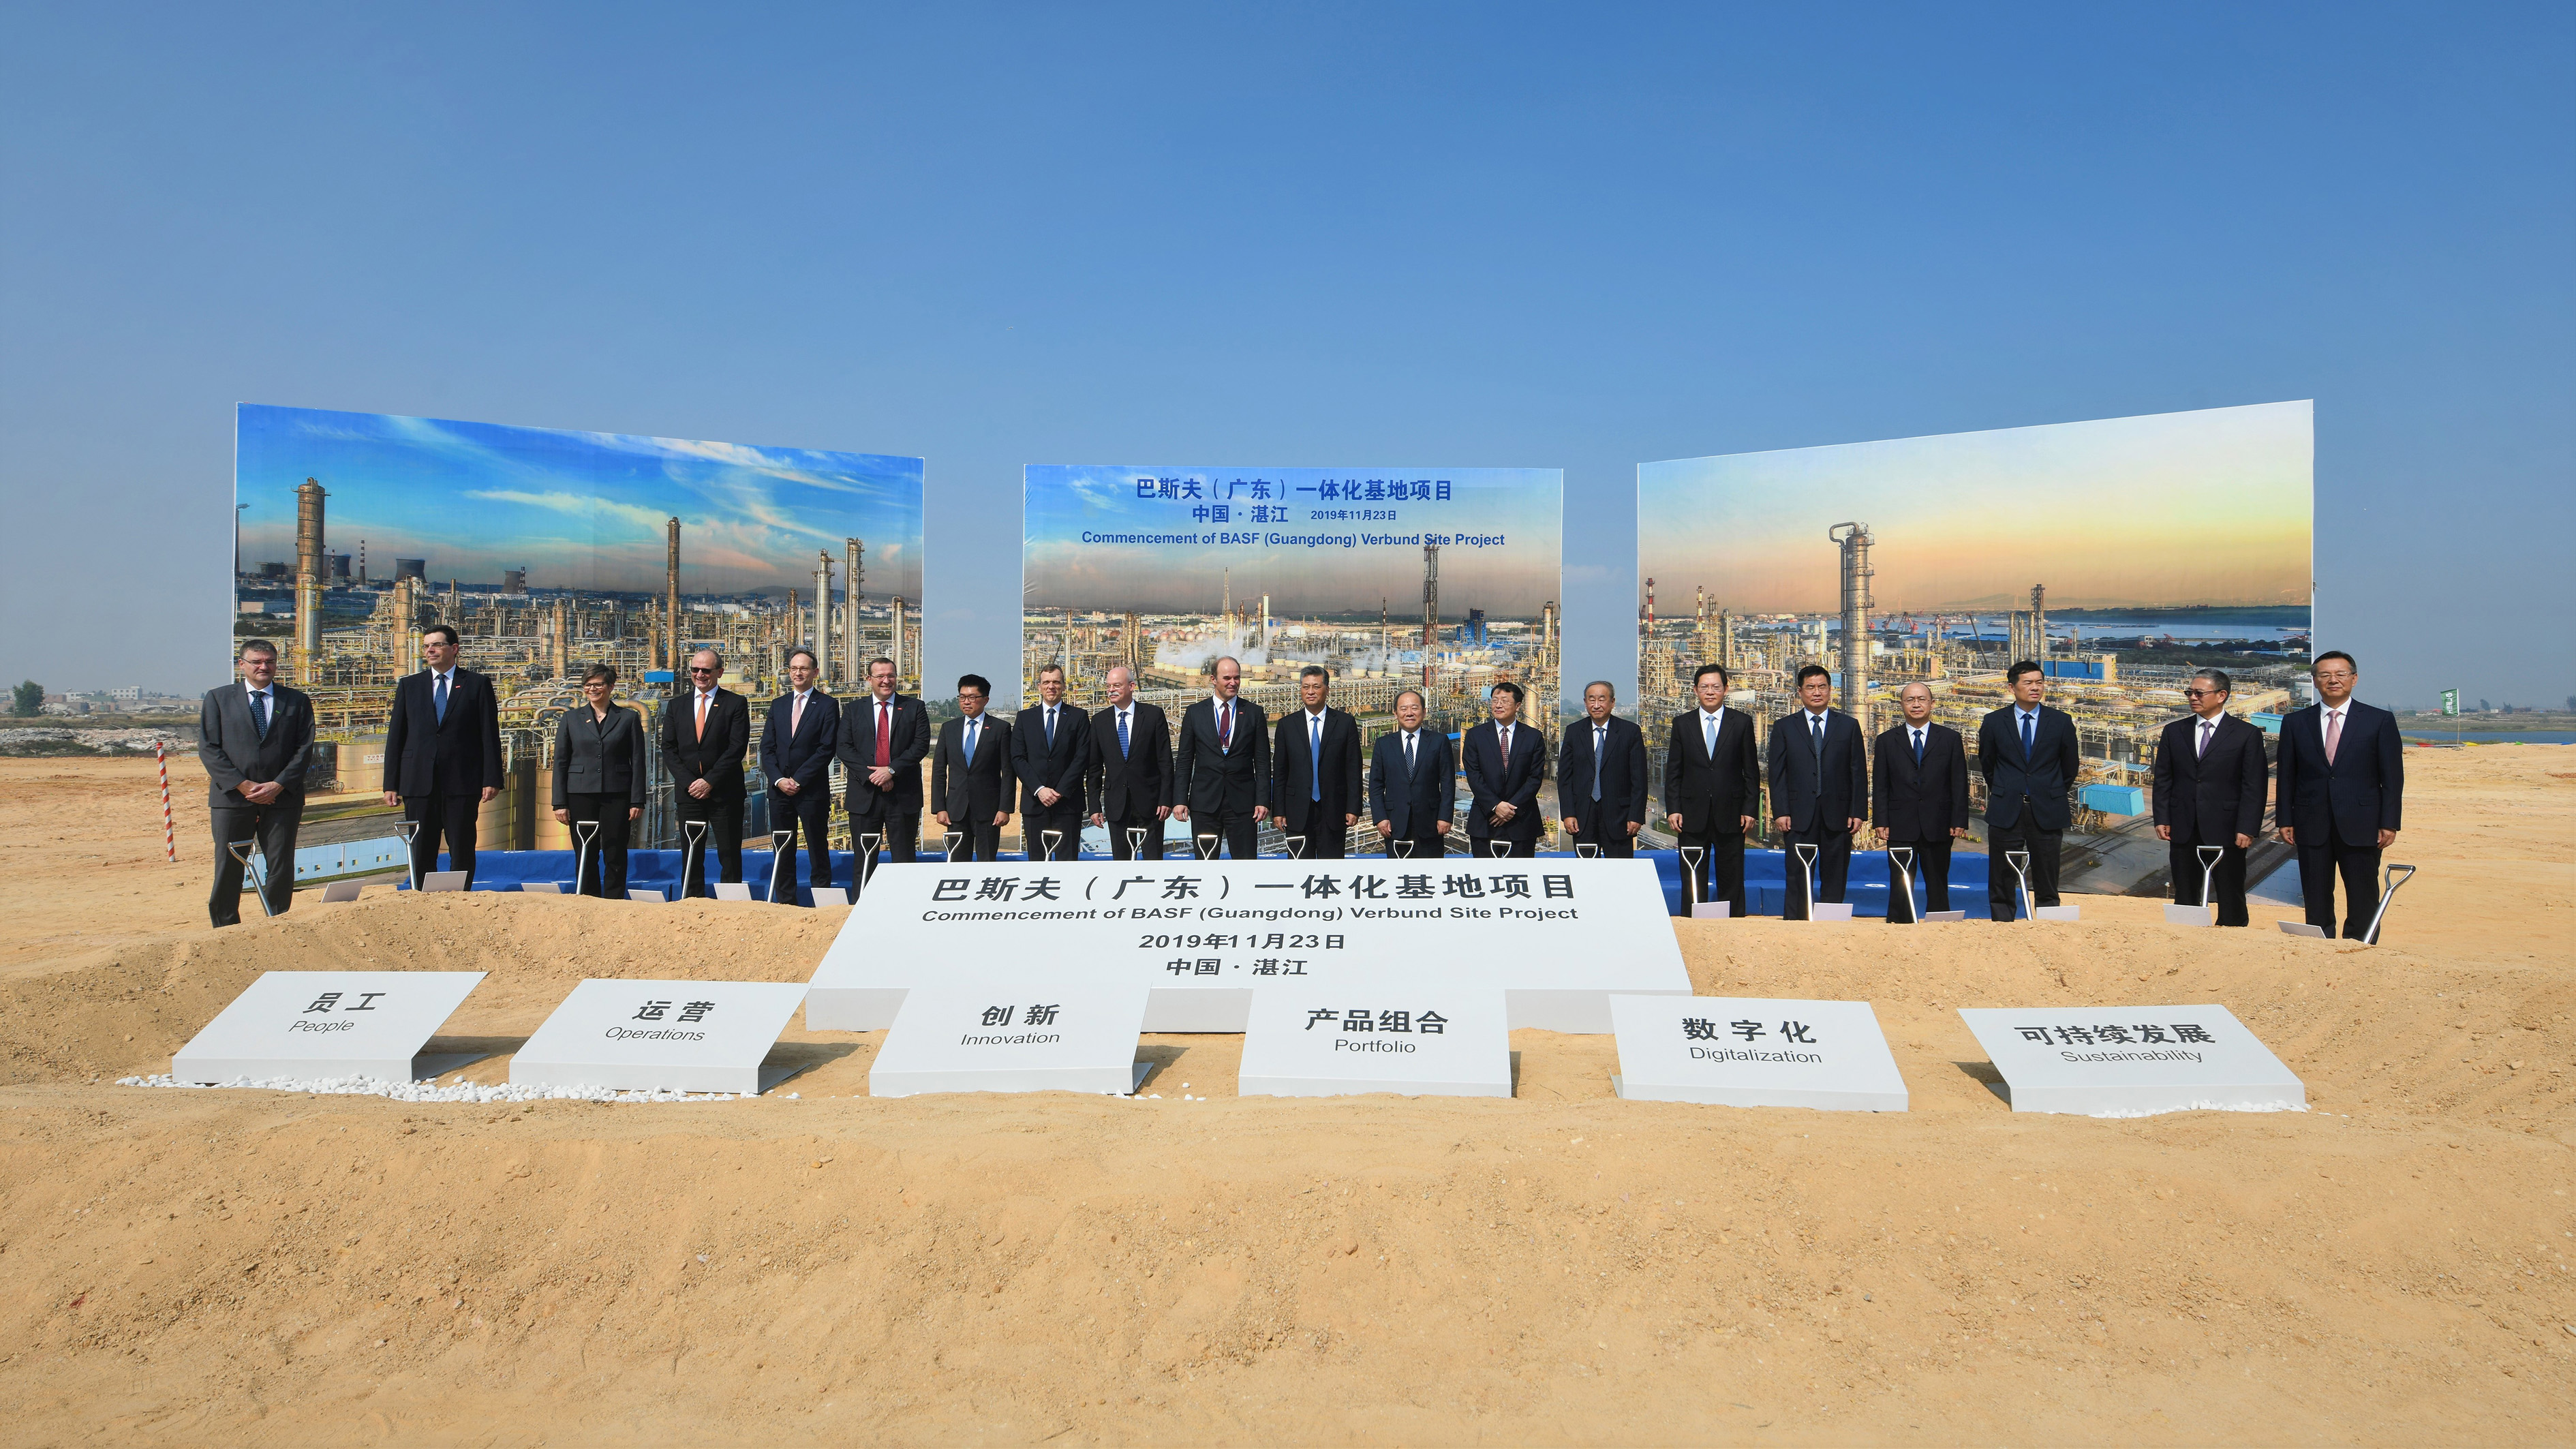 Ground-breaking ceremony for BASF's smart Verbund project in Zhanjiang, Guangdong, China. (Source: BASF)